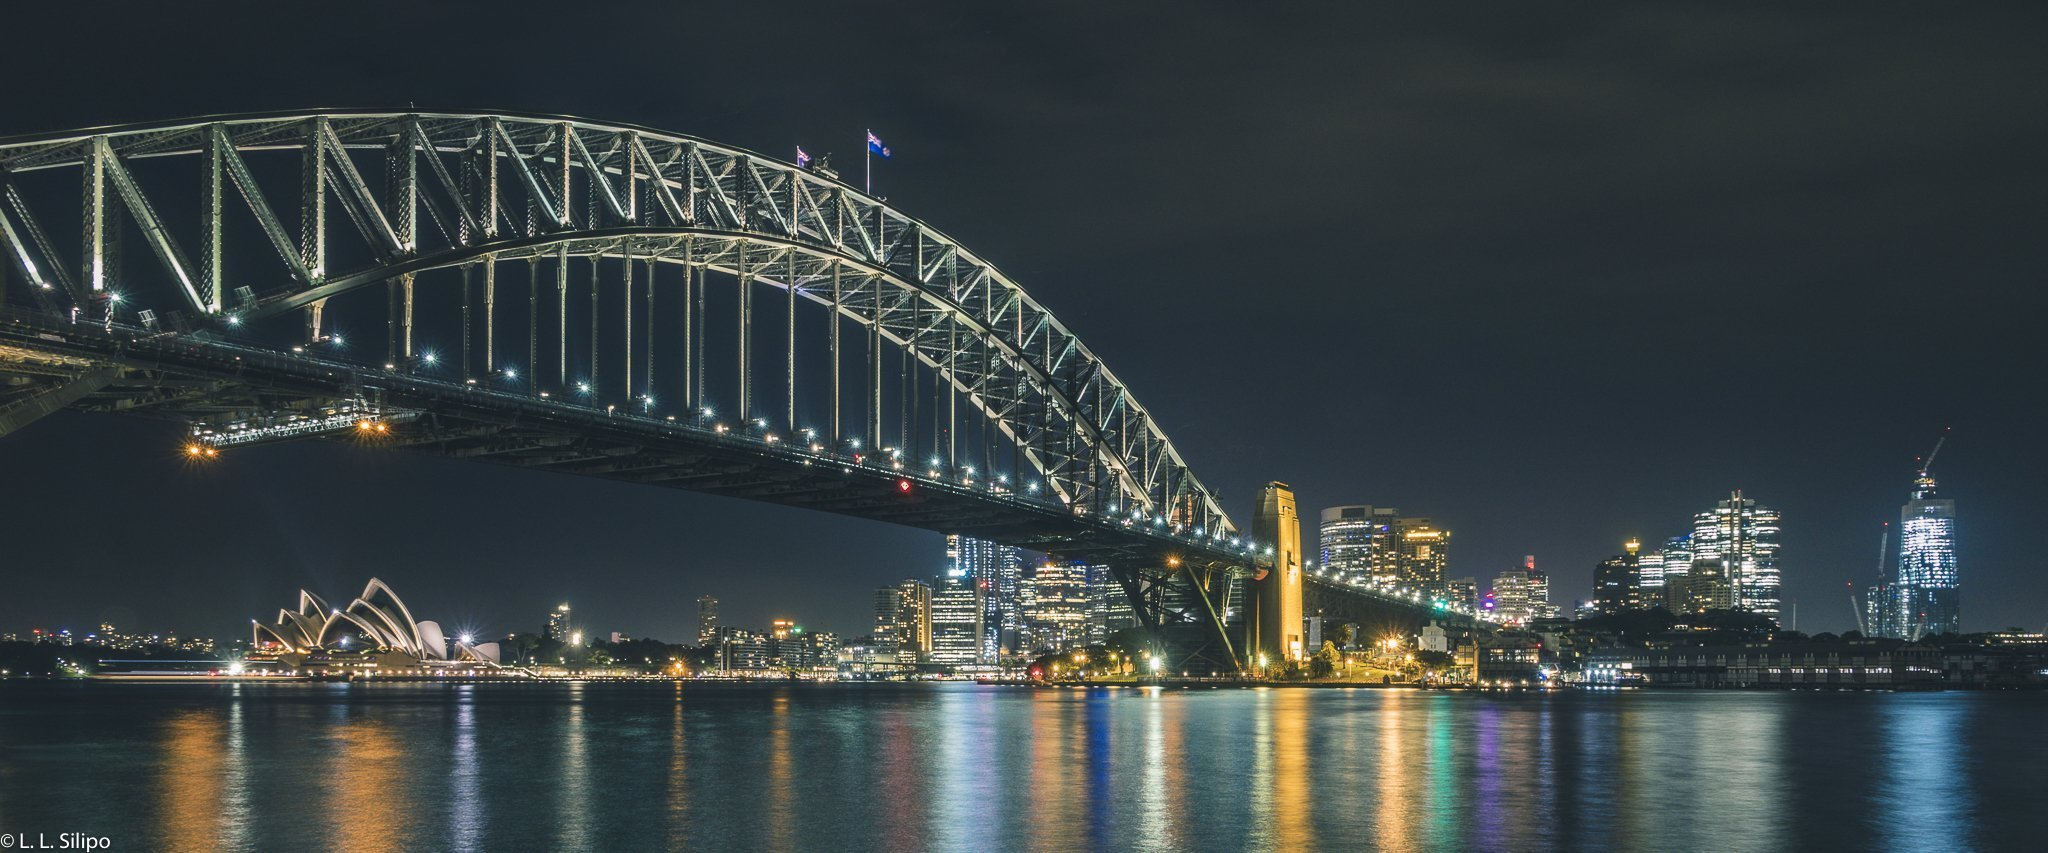 Australia, Sydney, architecture, australian, bay, bridge, city, cityscape, downtown, harbor, harbour, landmark, landmarks, landscape, opera, sea, sky, skyline, skyscraper, sunset, sydney harbour bridge, tourism, tower, travel, travel destination, urban, water, waterfront